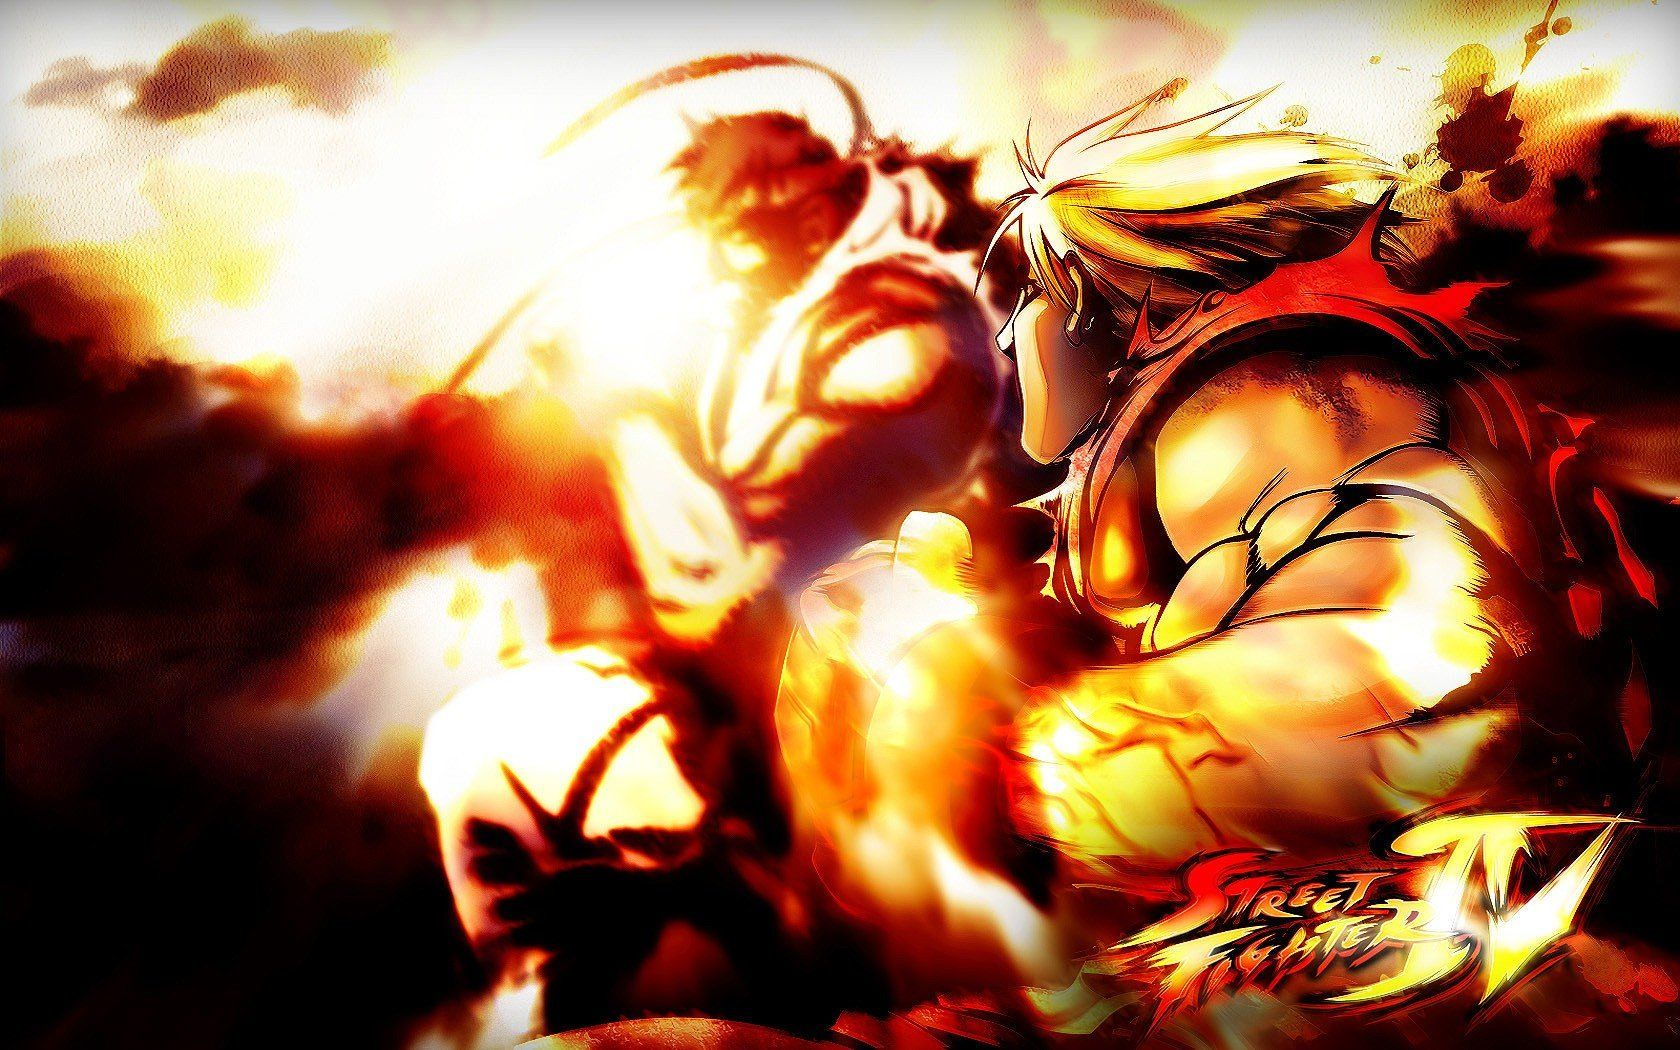 group of ken street fighter 5 wallpapers